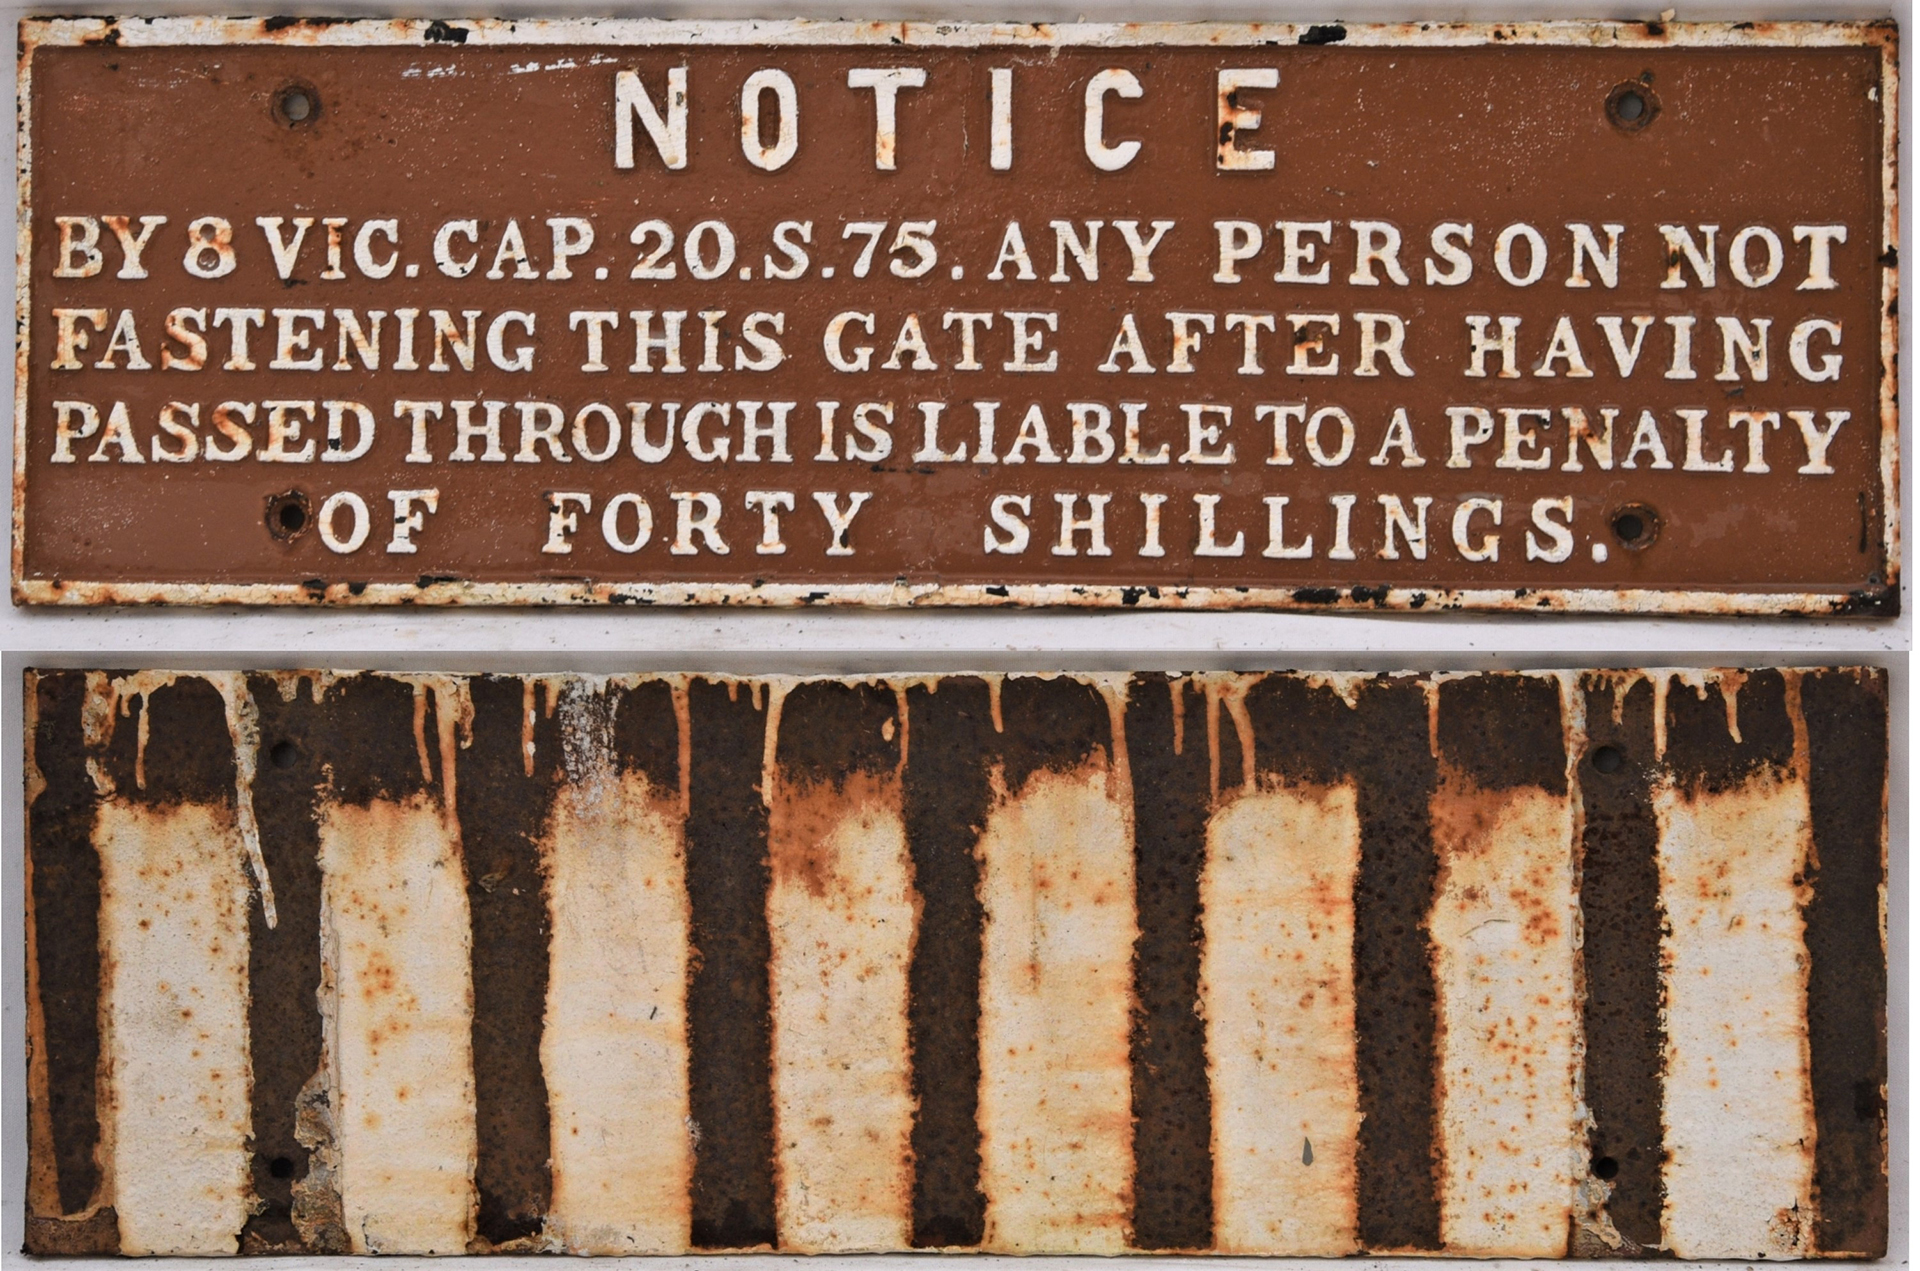 GWR Untitled pre grouping cast iron gate notice. NOTICE BY 8 VIC. CAP. 20.S.75. In completely